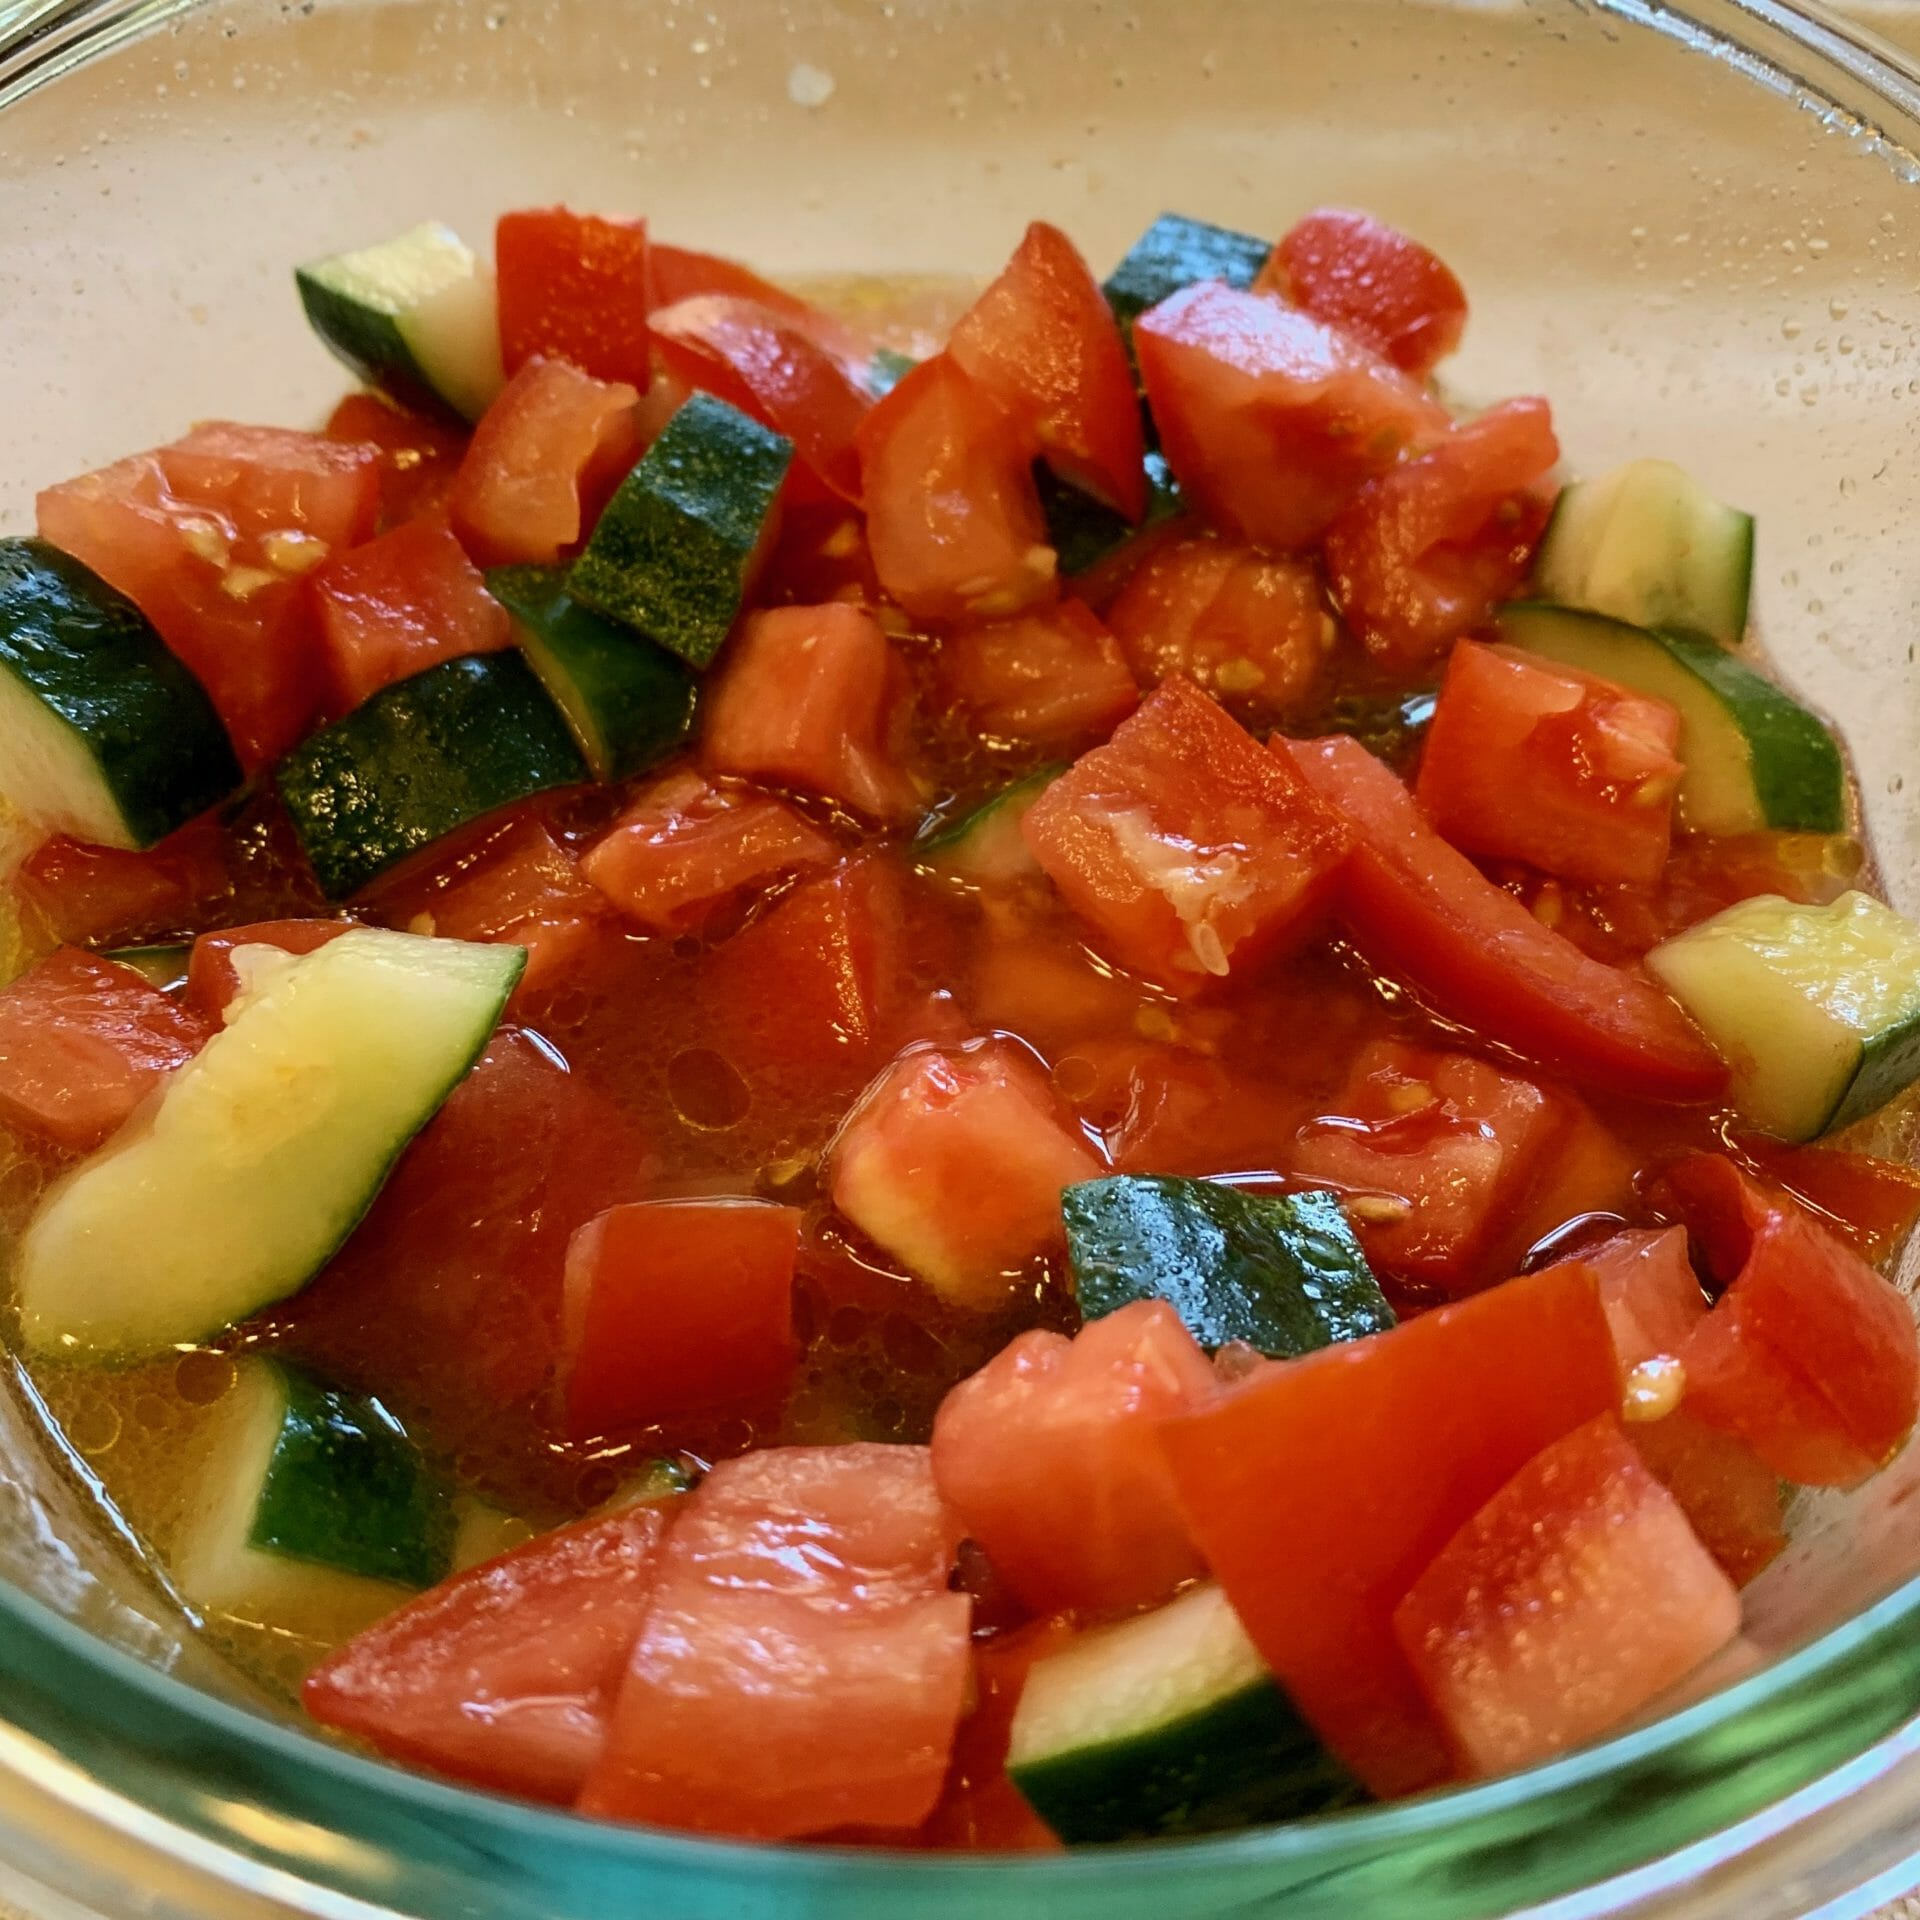 Salad made with diced tomatoes and cucumbers